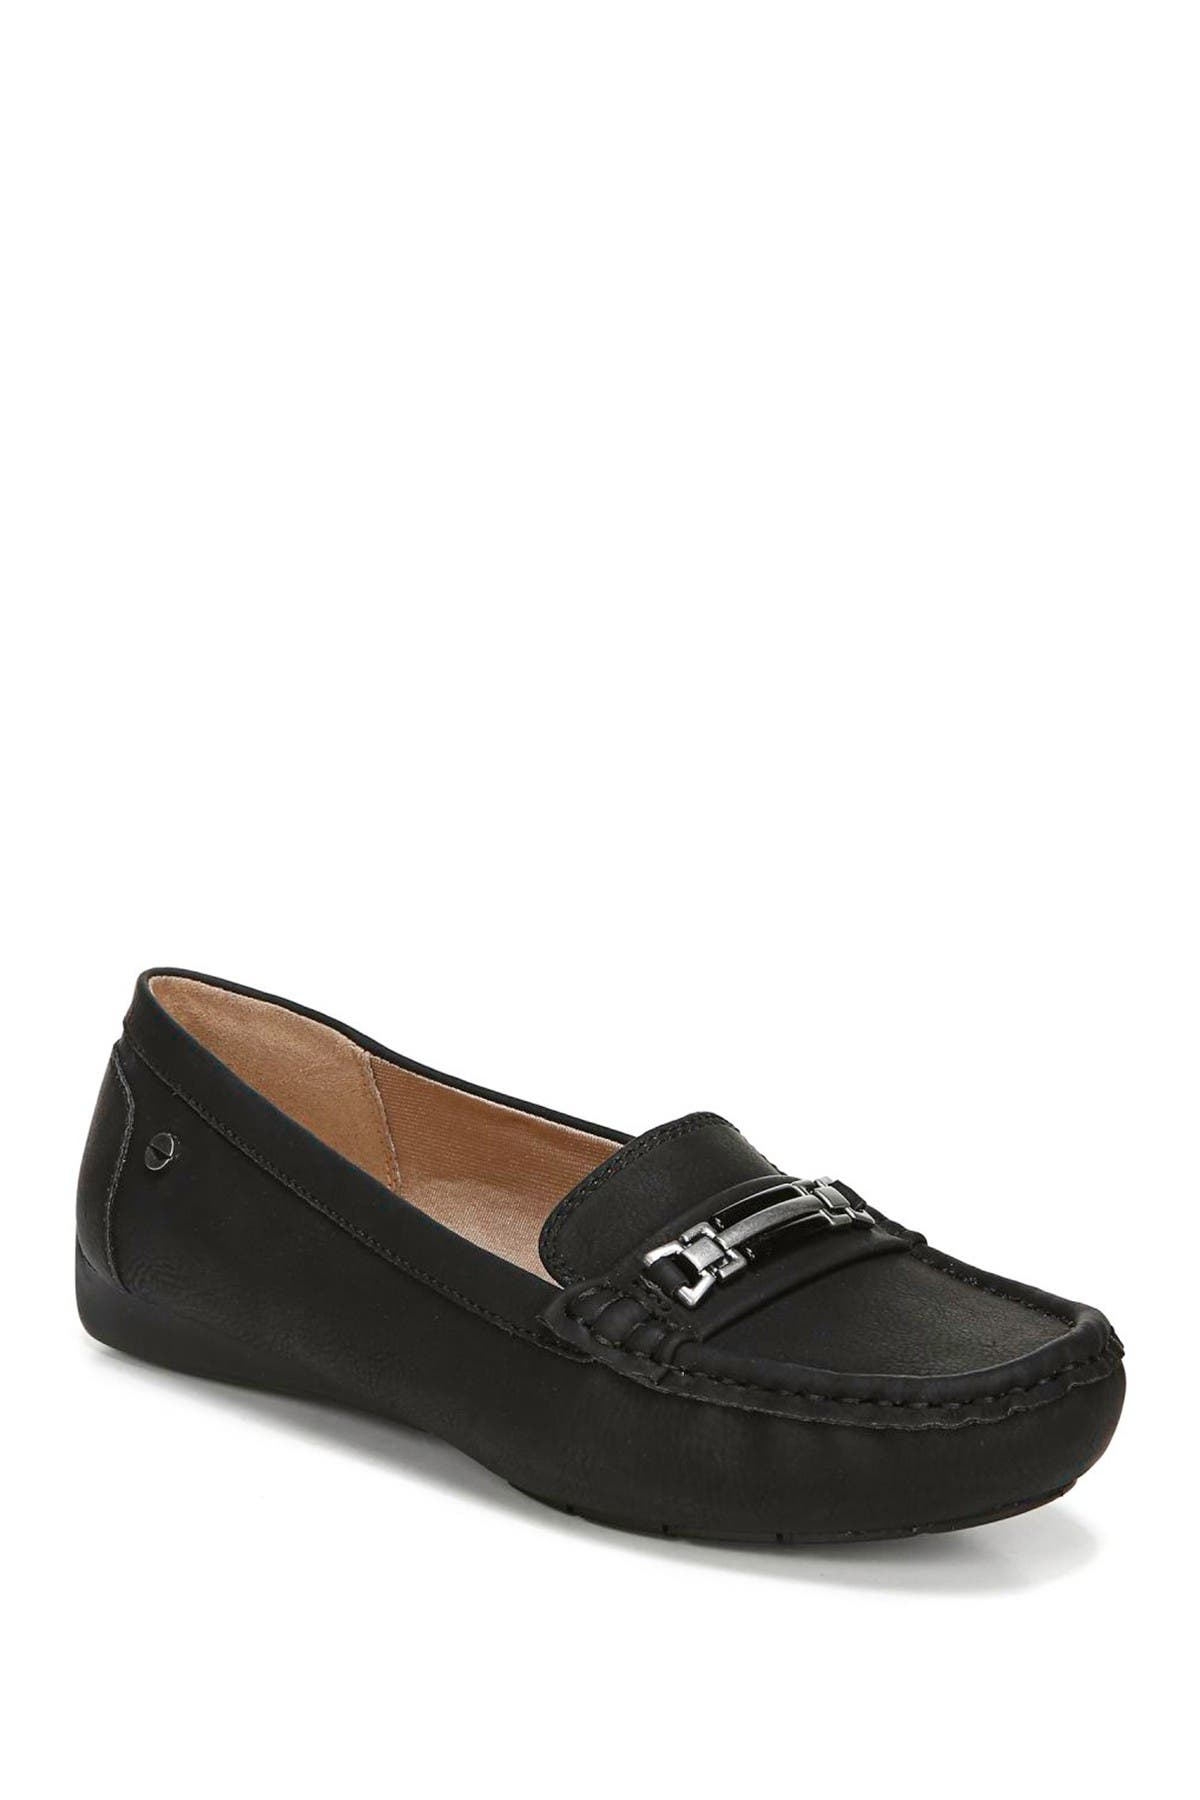 Image of LifeStride Vanity Loafer